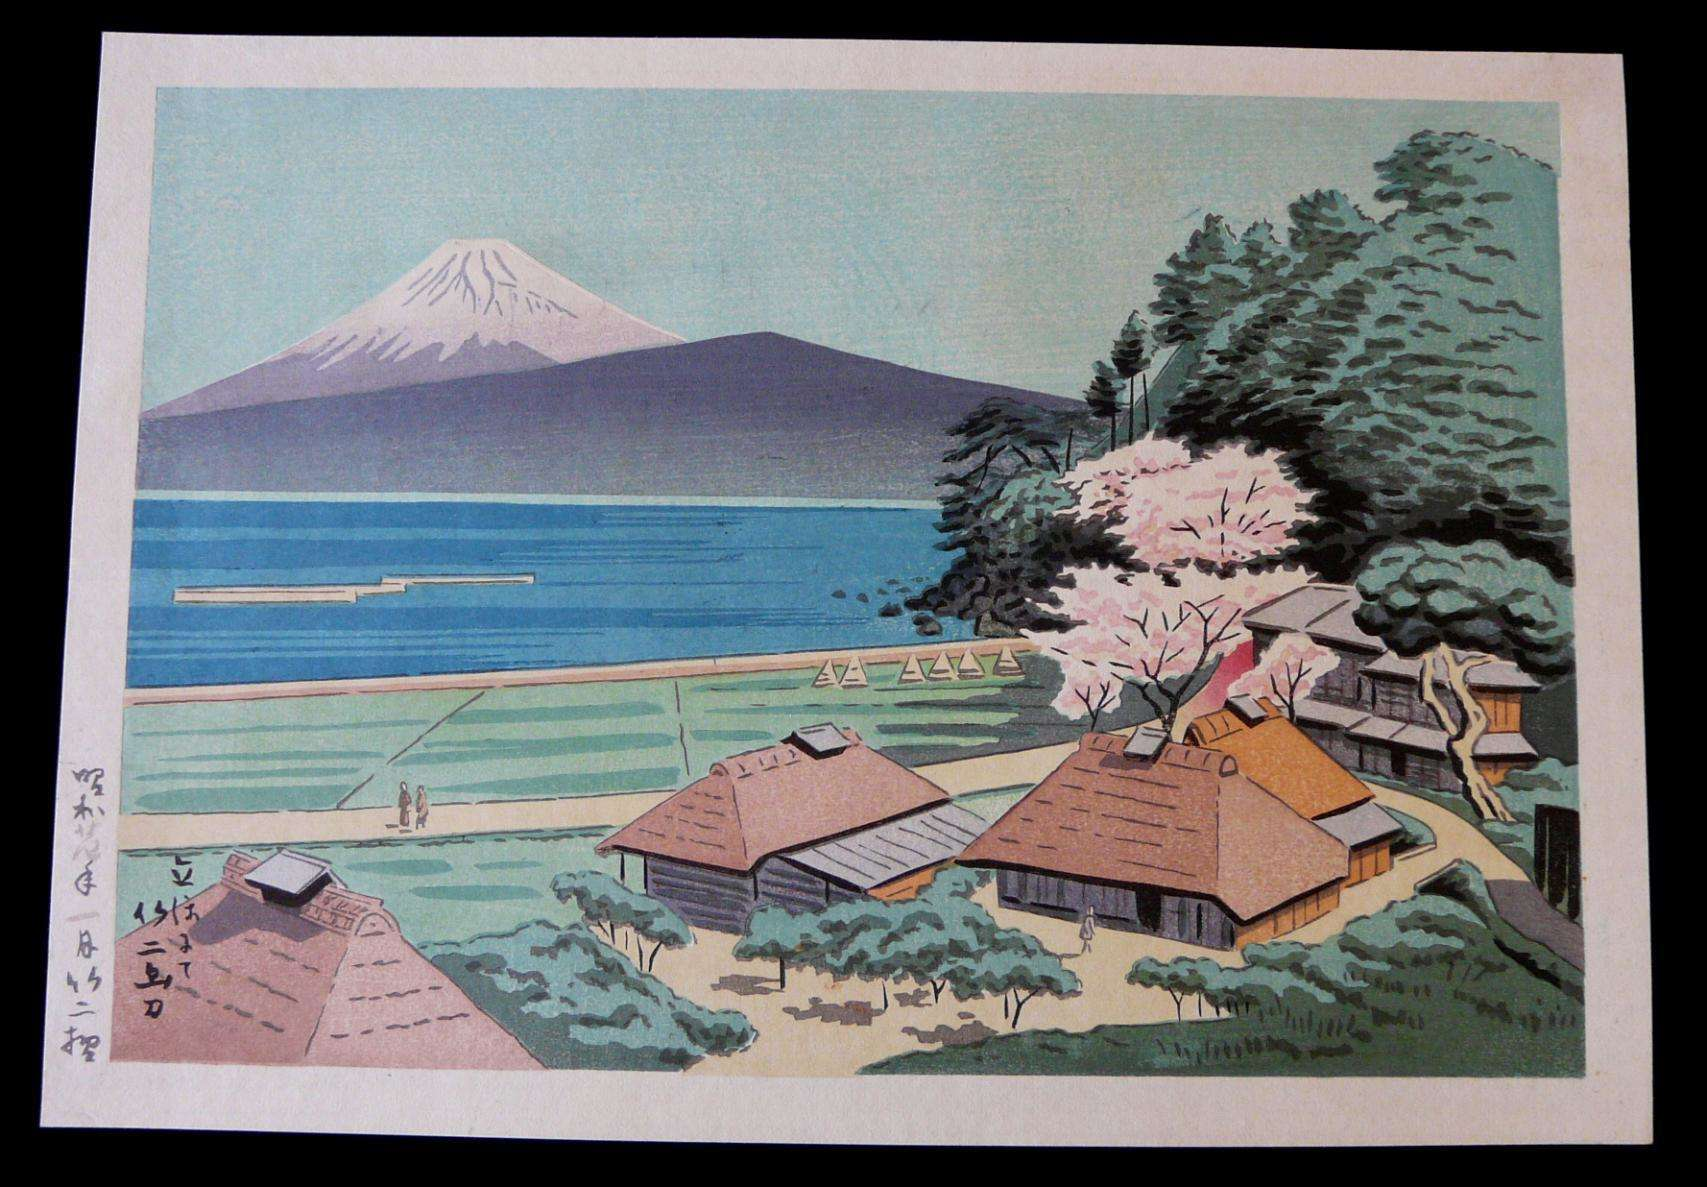 Takeji Asano: #P2231 SPRING VIEW OF MOUNT FUJI (1951)